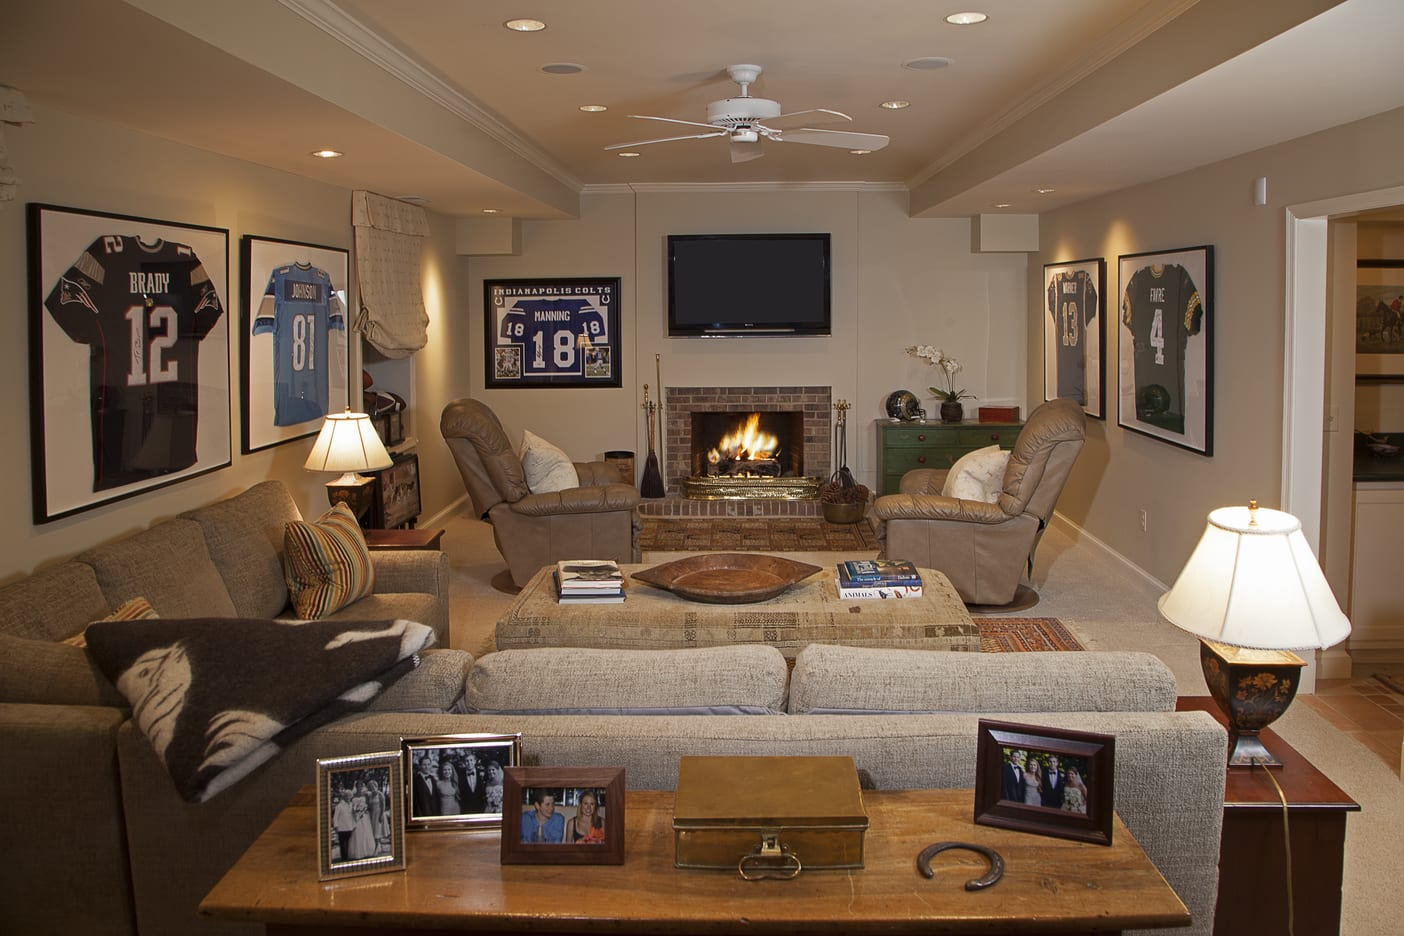 Chevy Chase, MAryland Basement Design Services